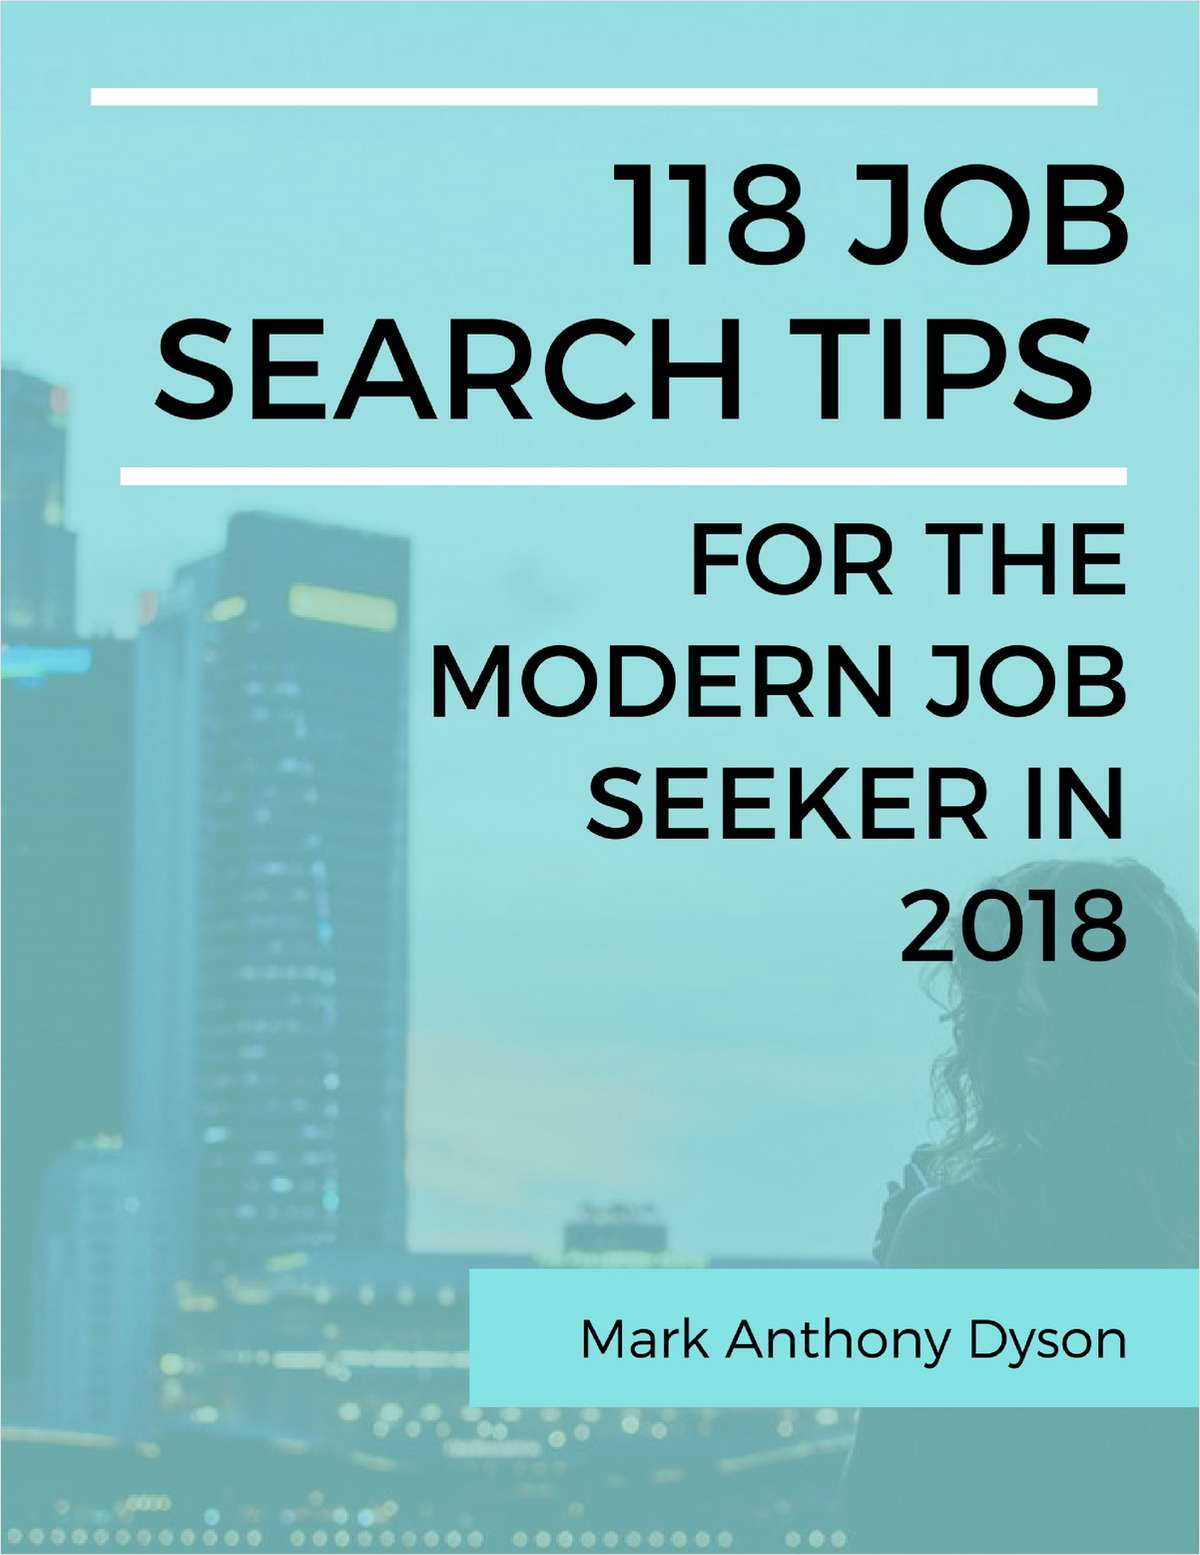 118 Job Search Tips for the Modern Job Seeker in 2018